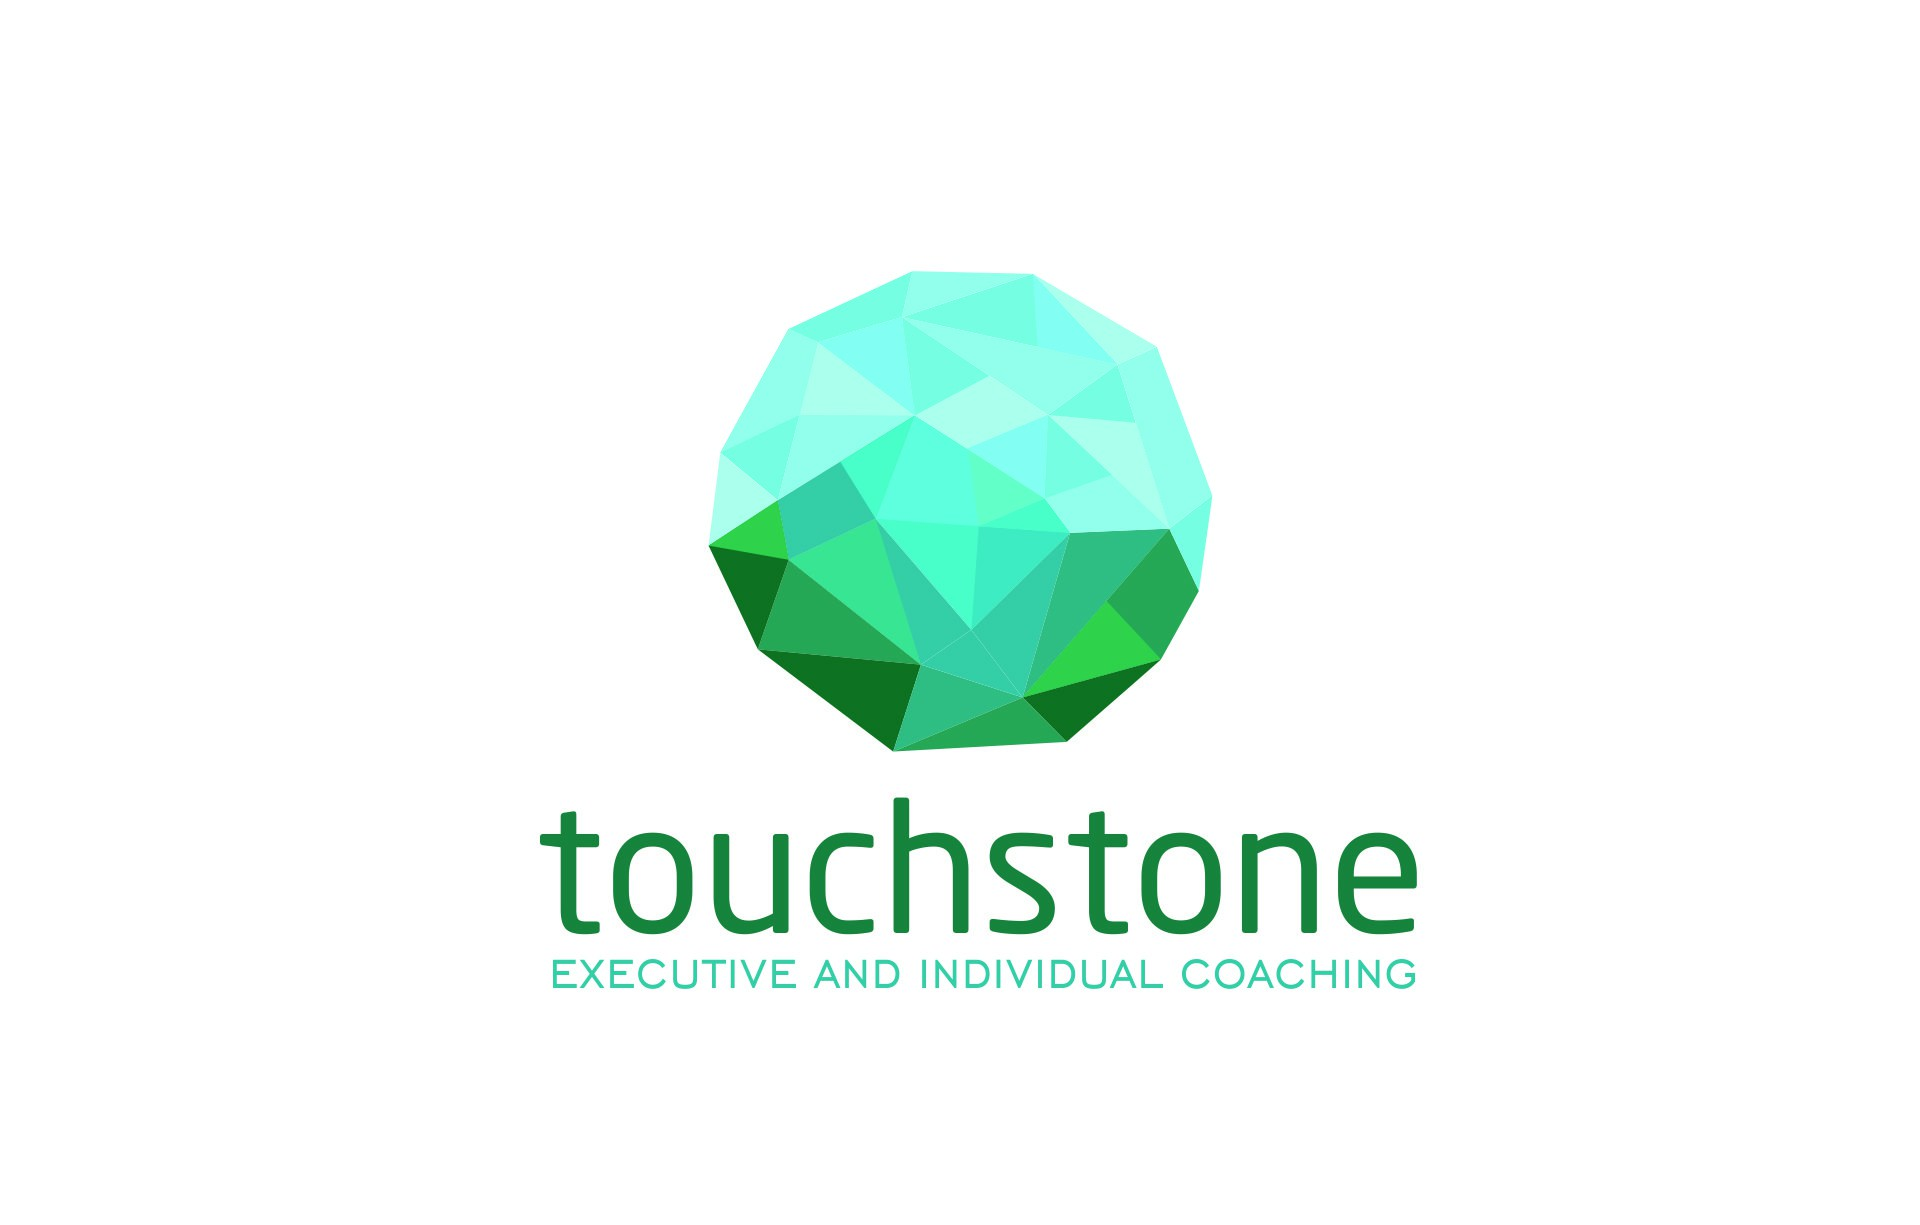 Touchstone needs a logo that conveys the creativity and heart I bring to coaching